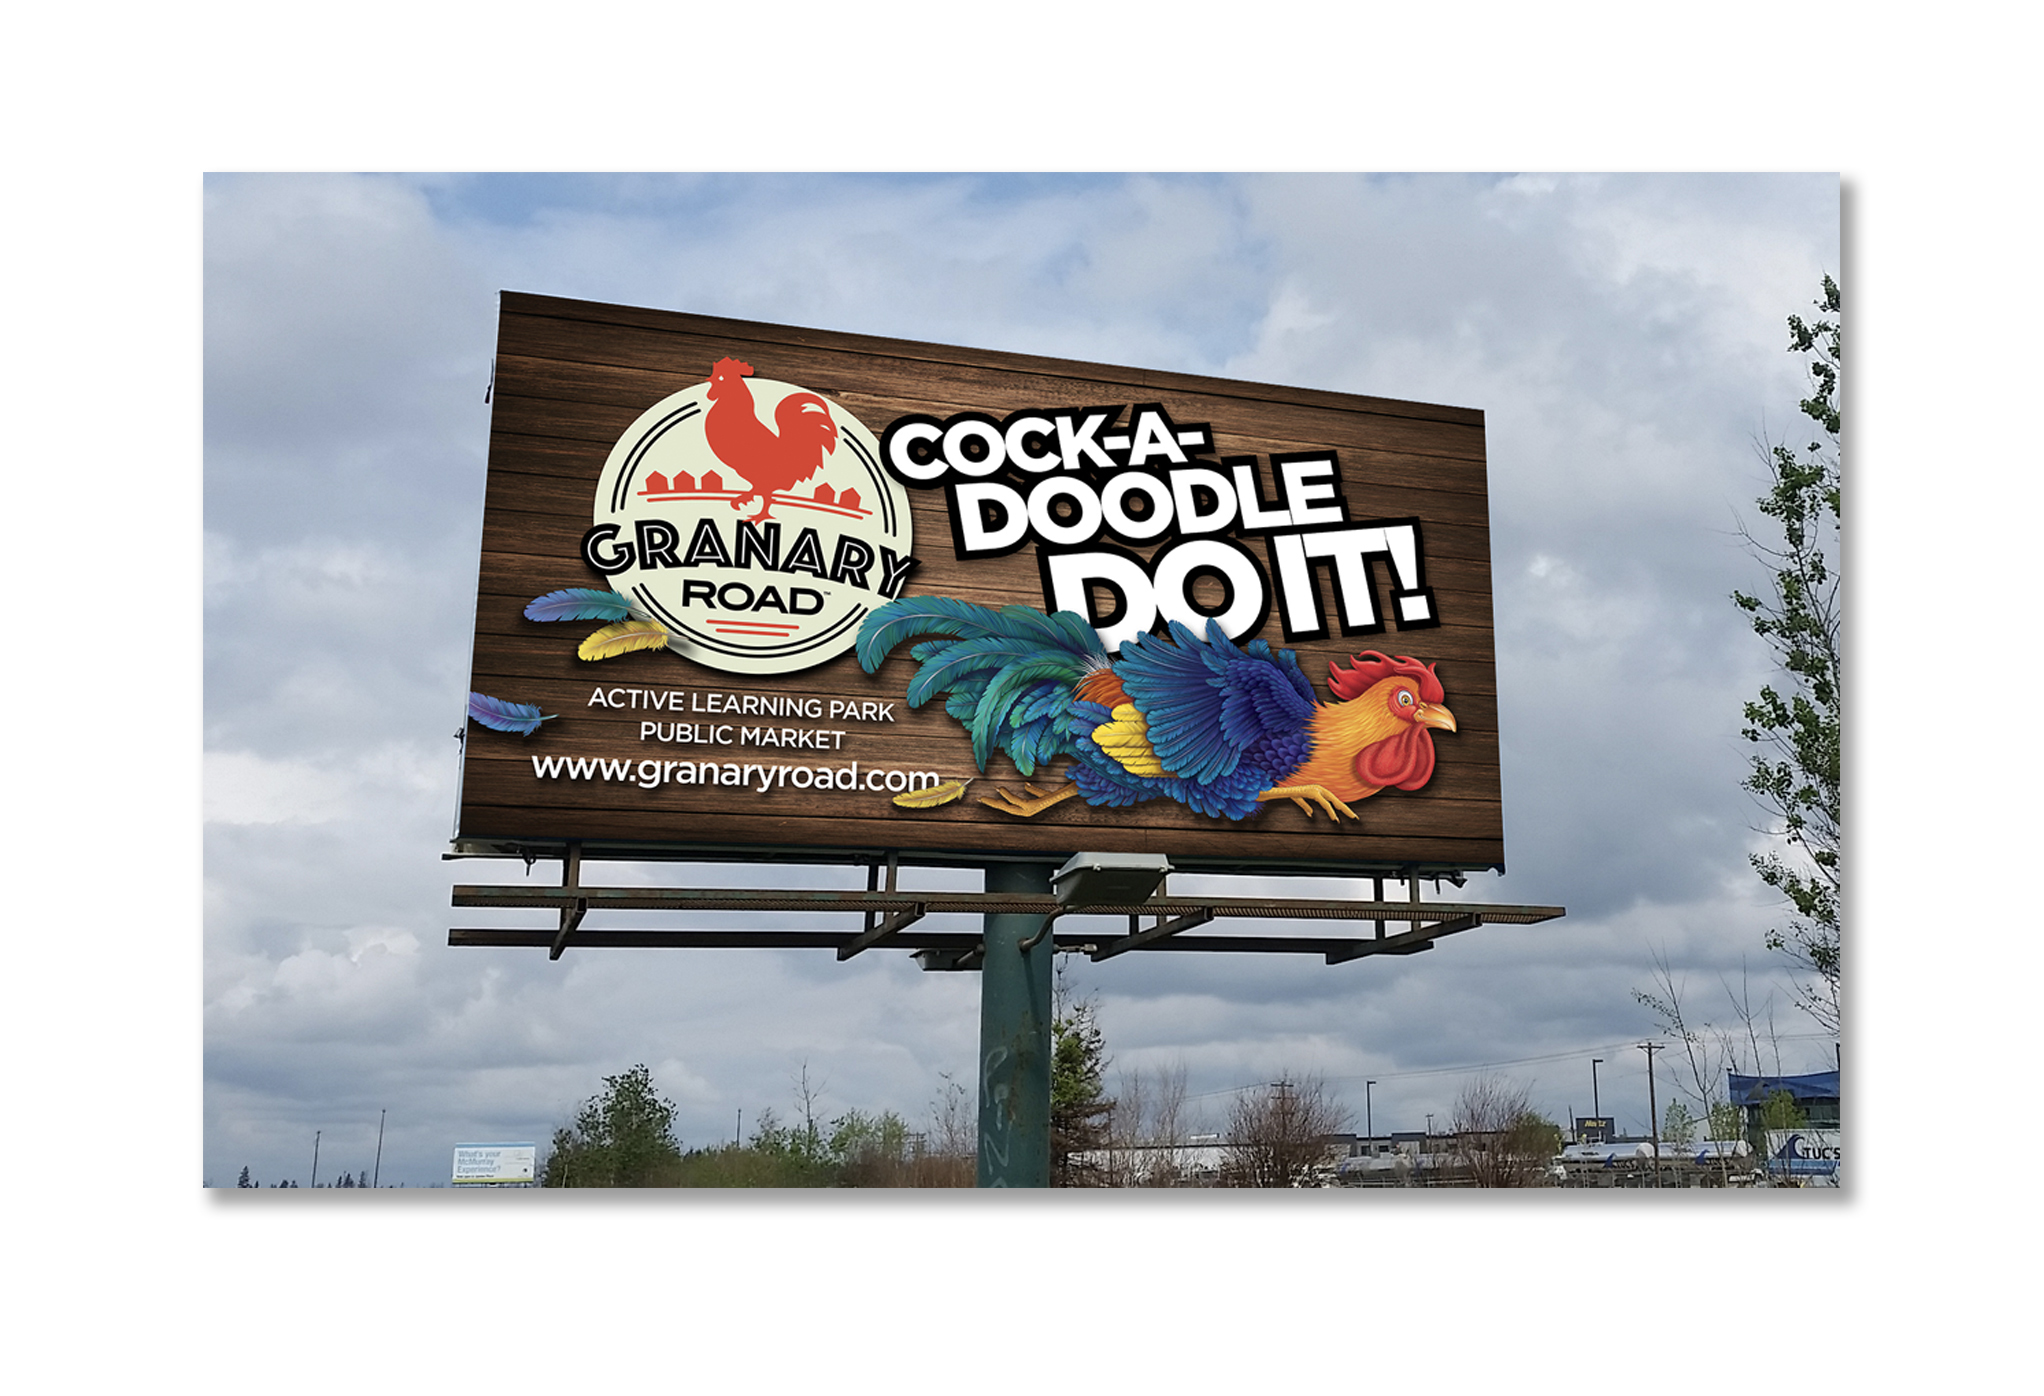 SEE MORE OUTDOOR ADVERTISING FROM WHOVILLE